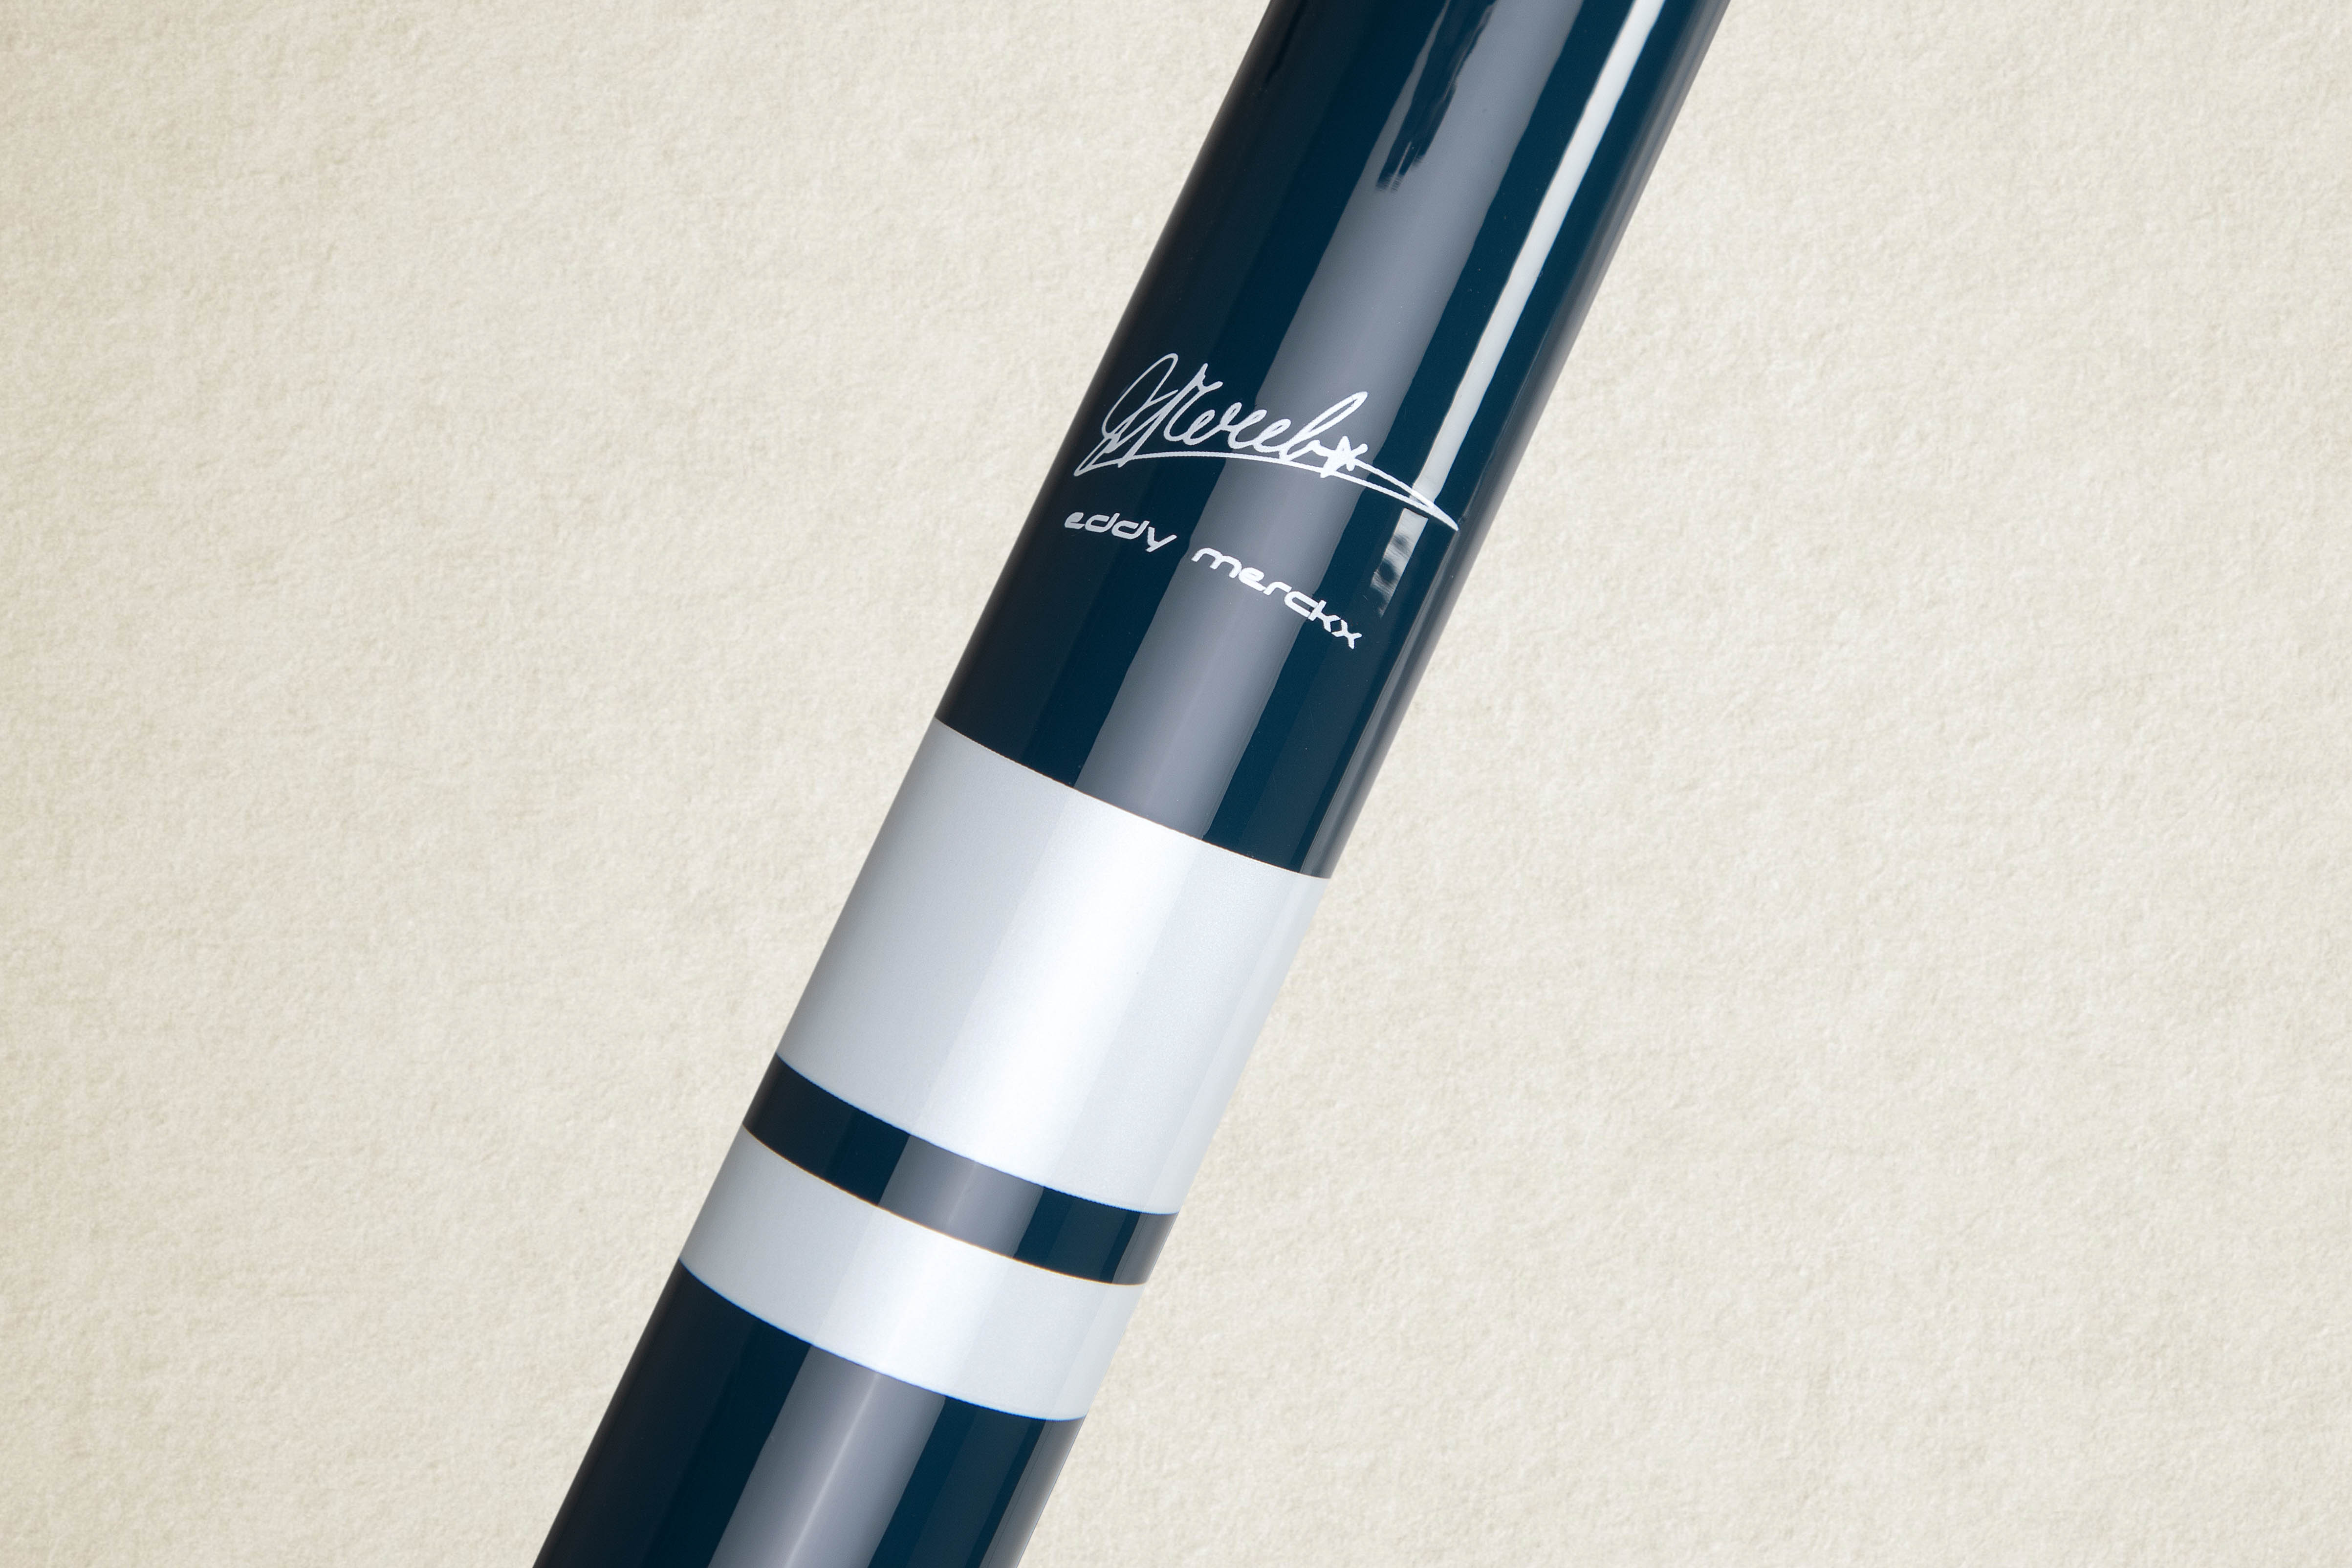 Every steel Criterium has the original Eddy Merckx signature on the top tube.